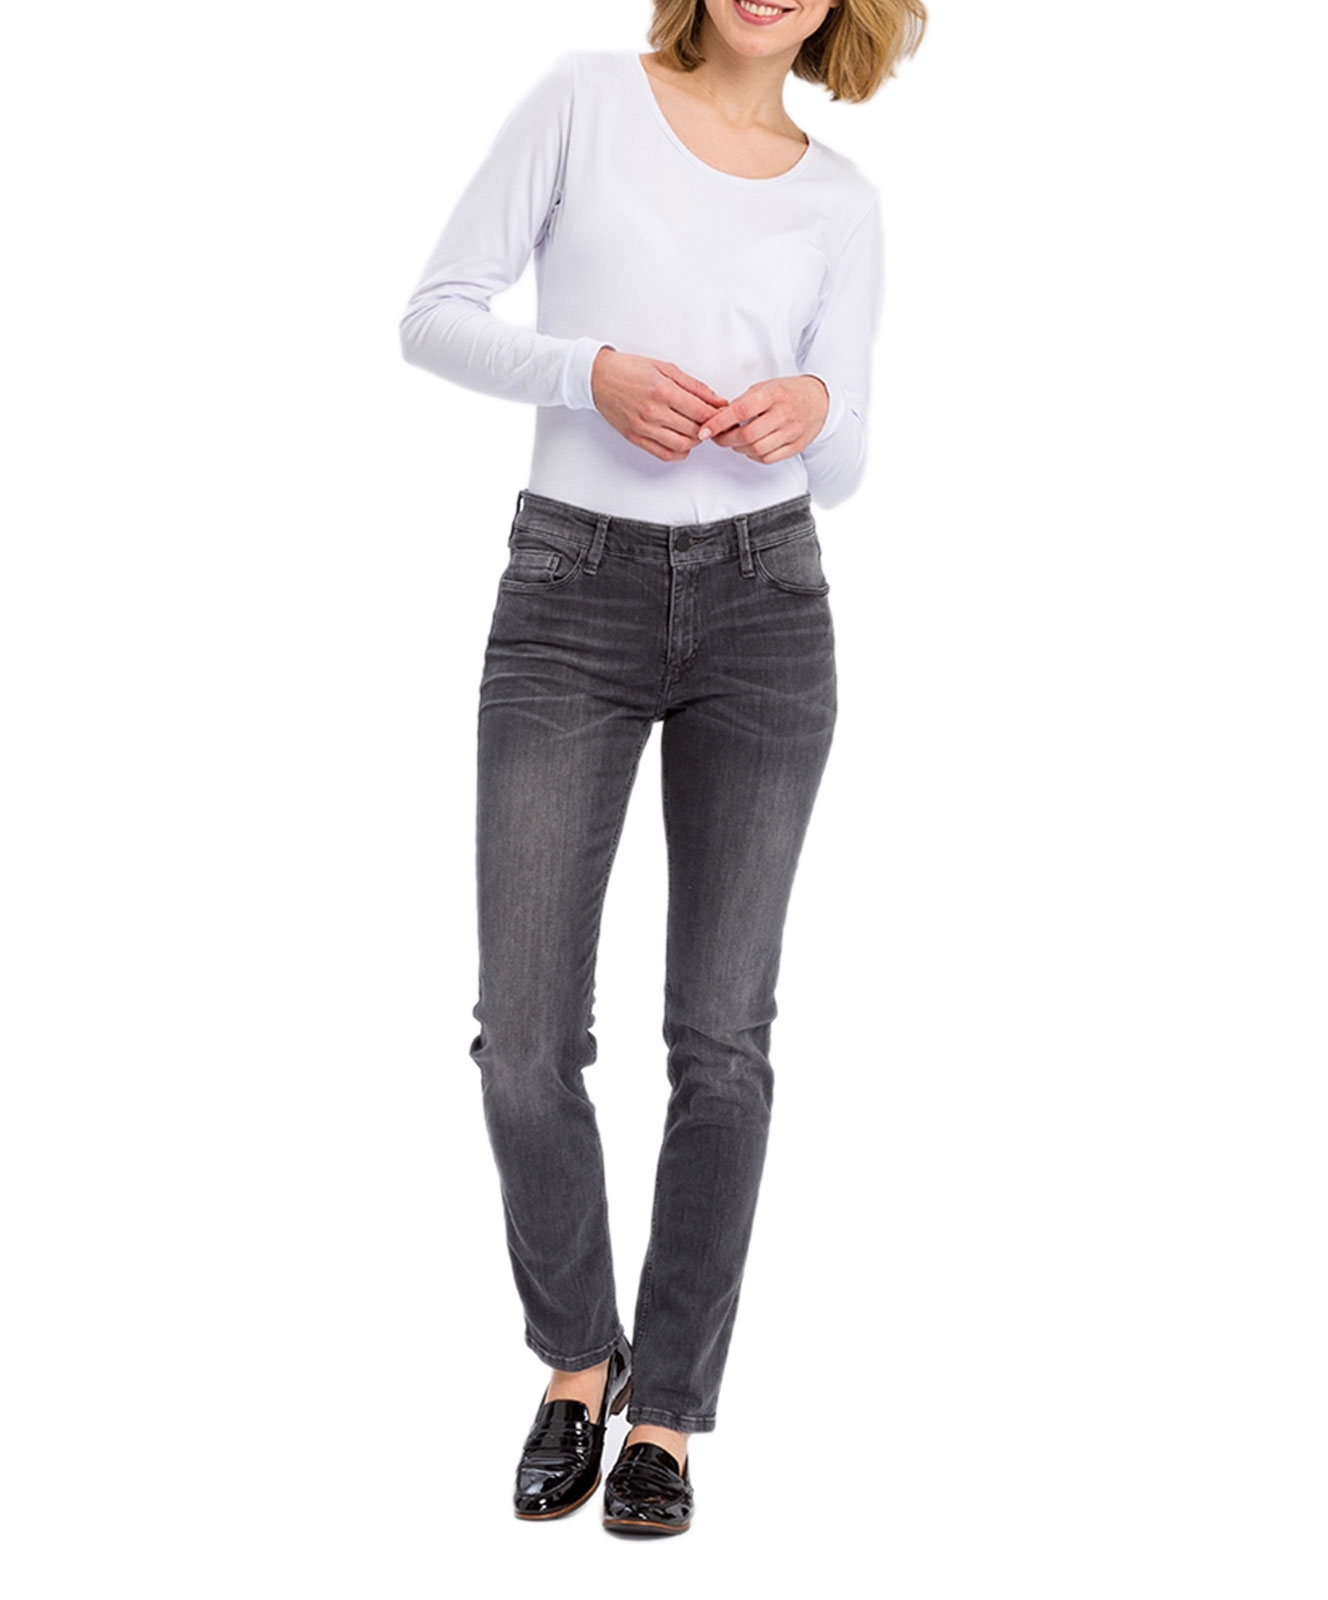 Hosen - Cross High Waisted Jeans Anya in Dark Grey  - Onlineshop Jeans Meile